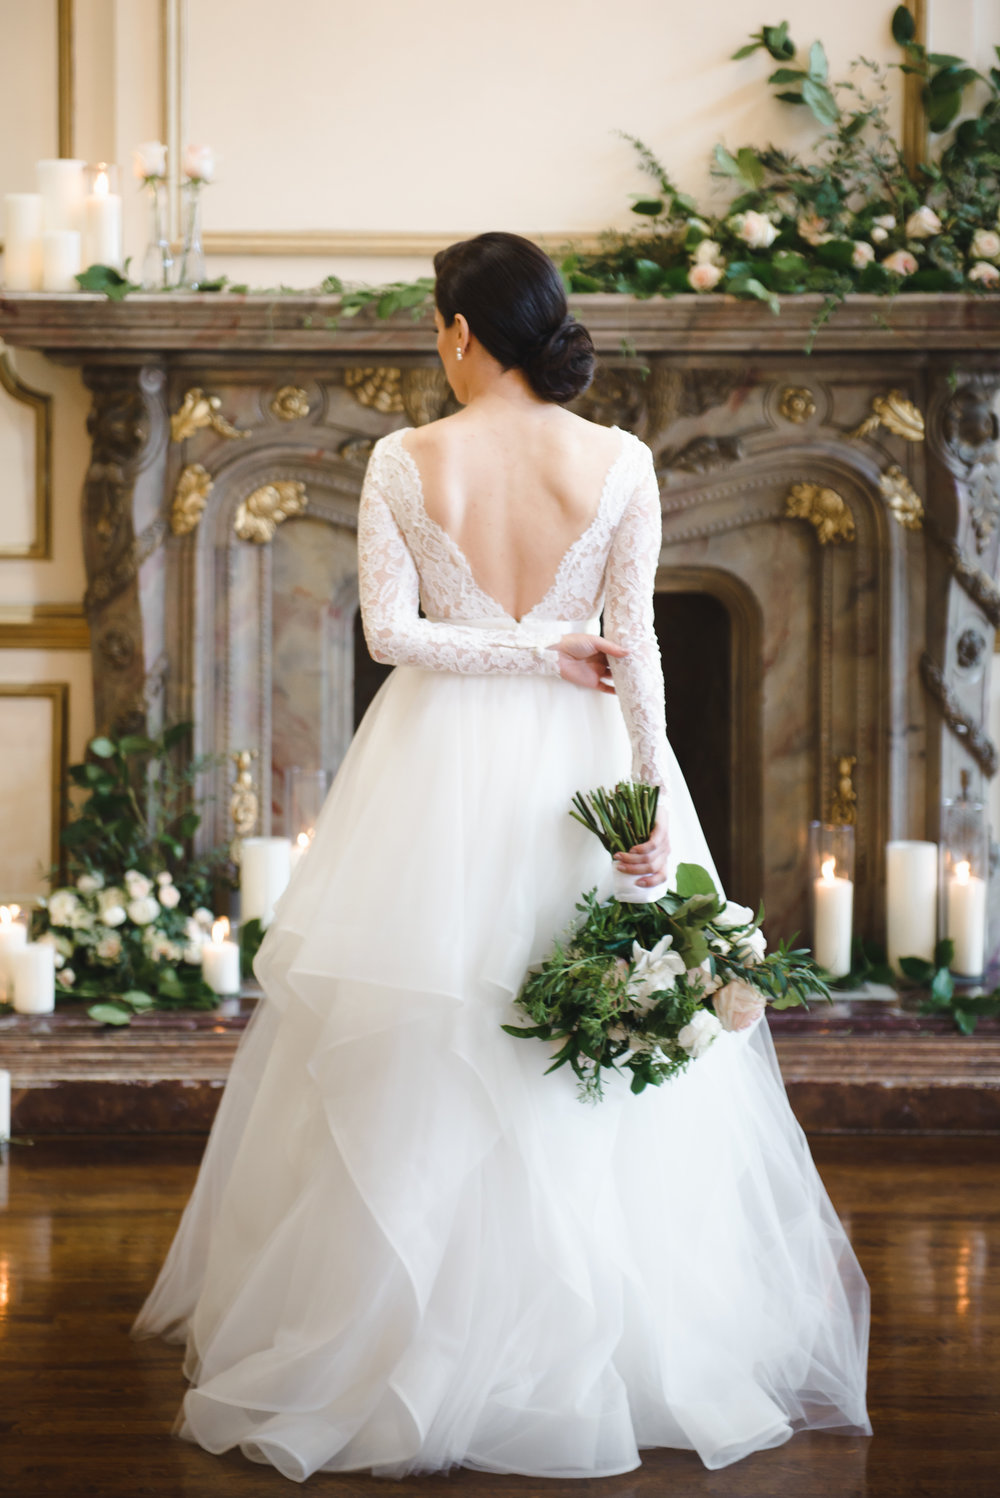 mantel florals at alexandria ballroom low back dress #dtlawedding #lrqcfloral.jpg